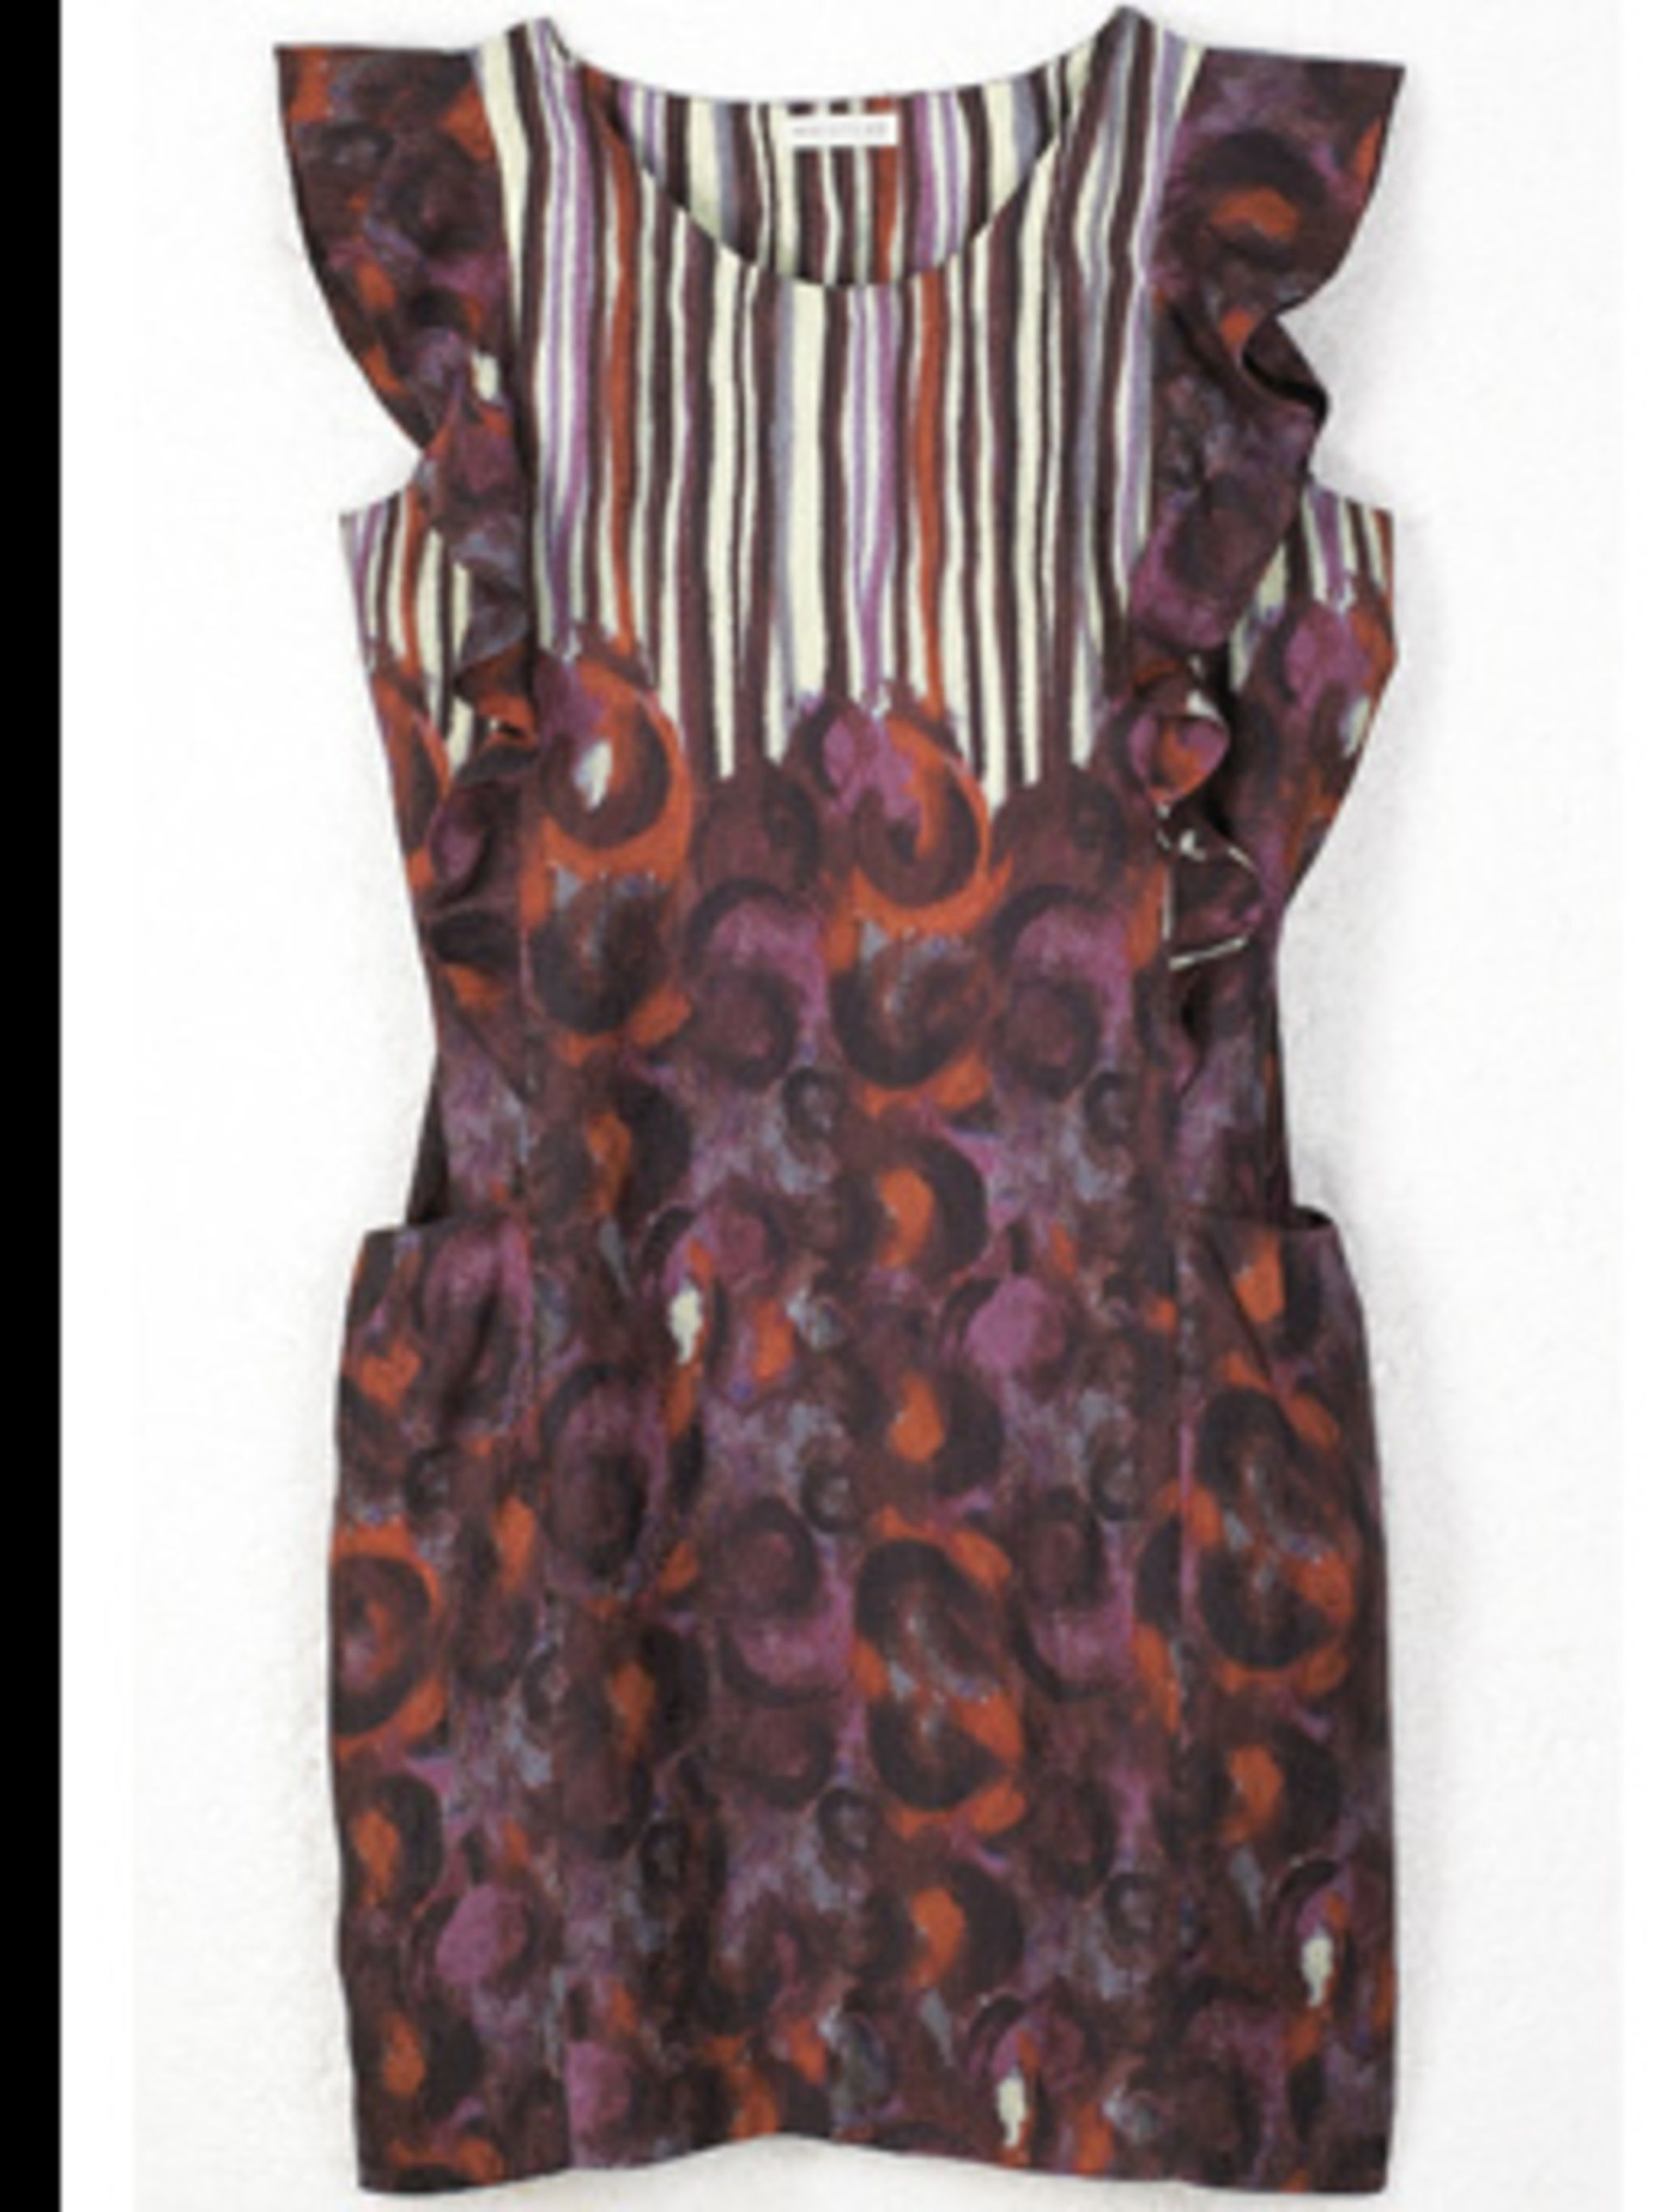 <p>Dress, £130.00 from Whistles. For stockists call 0870 770 4301</p>